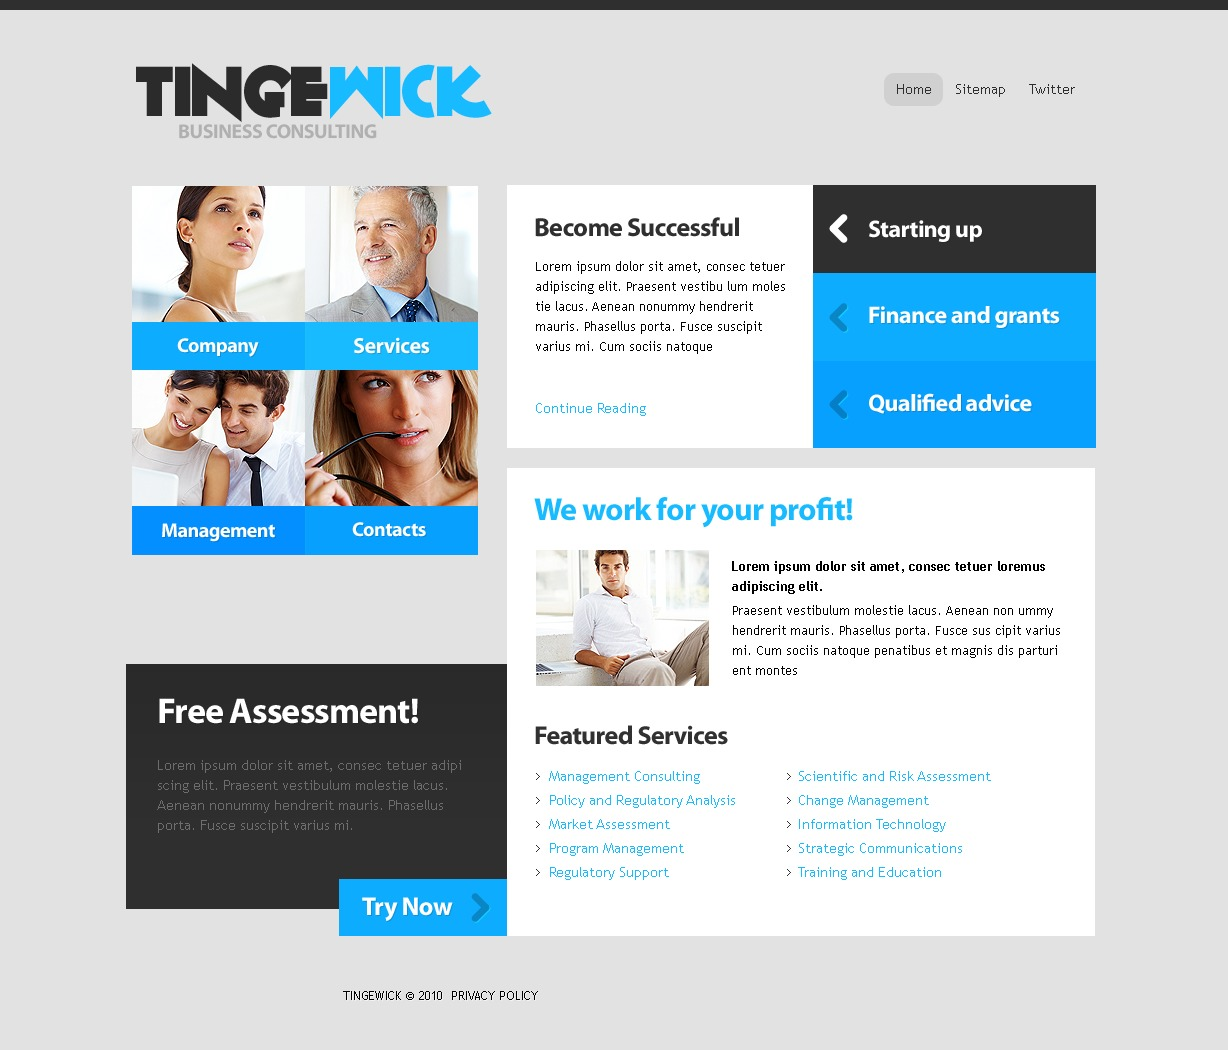 The Tinge Wick PSD Design 54516, one of the best PSD templates of its kind (business, wide, jquery), also known as tinge wick PSD template, business company PSD template, corporate solutions PSD template, innovations PSD template, contacts PSD template, service PSD template, support PSD template, information dealer PSD template, stocks PSD template, team PSD template, success PSD template, money PSD template, marketing PSD template, director PSD template, manager PSD template, analytics PSD template, planning PSD template, limited PSD template, office PSD template, sales and related with tinge wick, business company, corporate solutions, innovations, contacts, service, support, information dealer, stocks, team, success, money, marketing, director, manager, analytics, planning, limited, office, sales, etc.